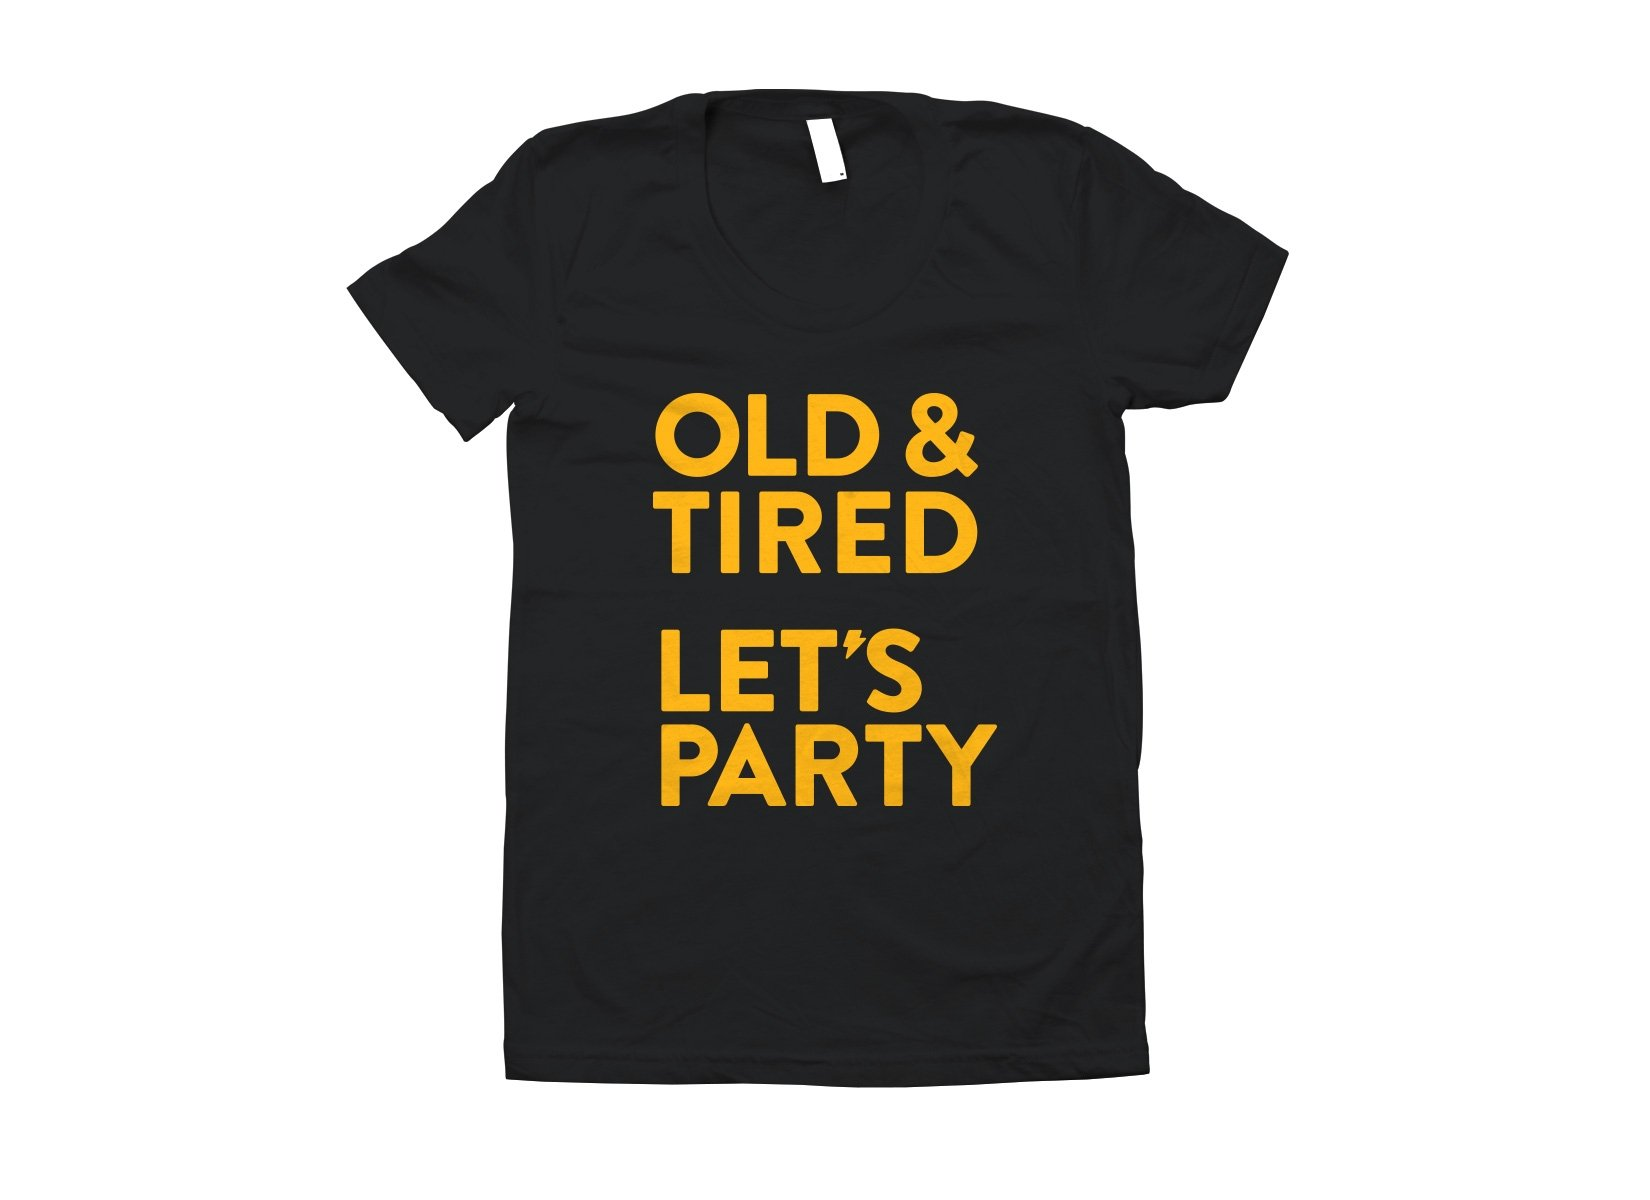 Old & Tired Let's Party on Juniors T-Shirt